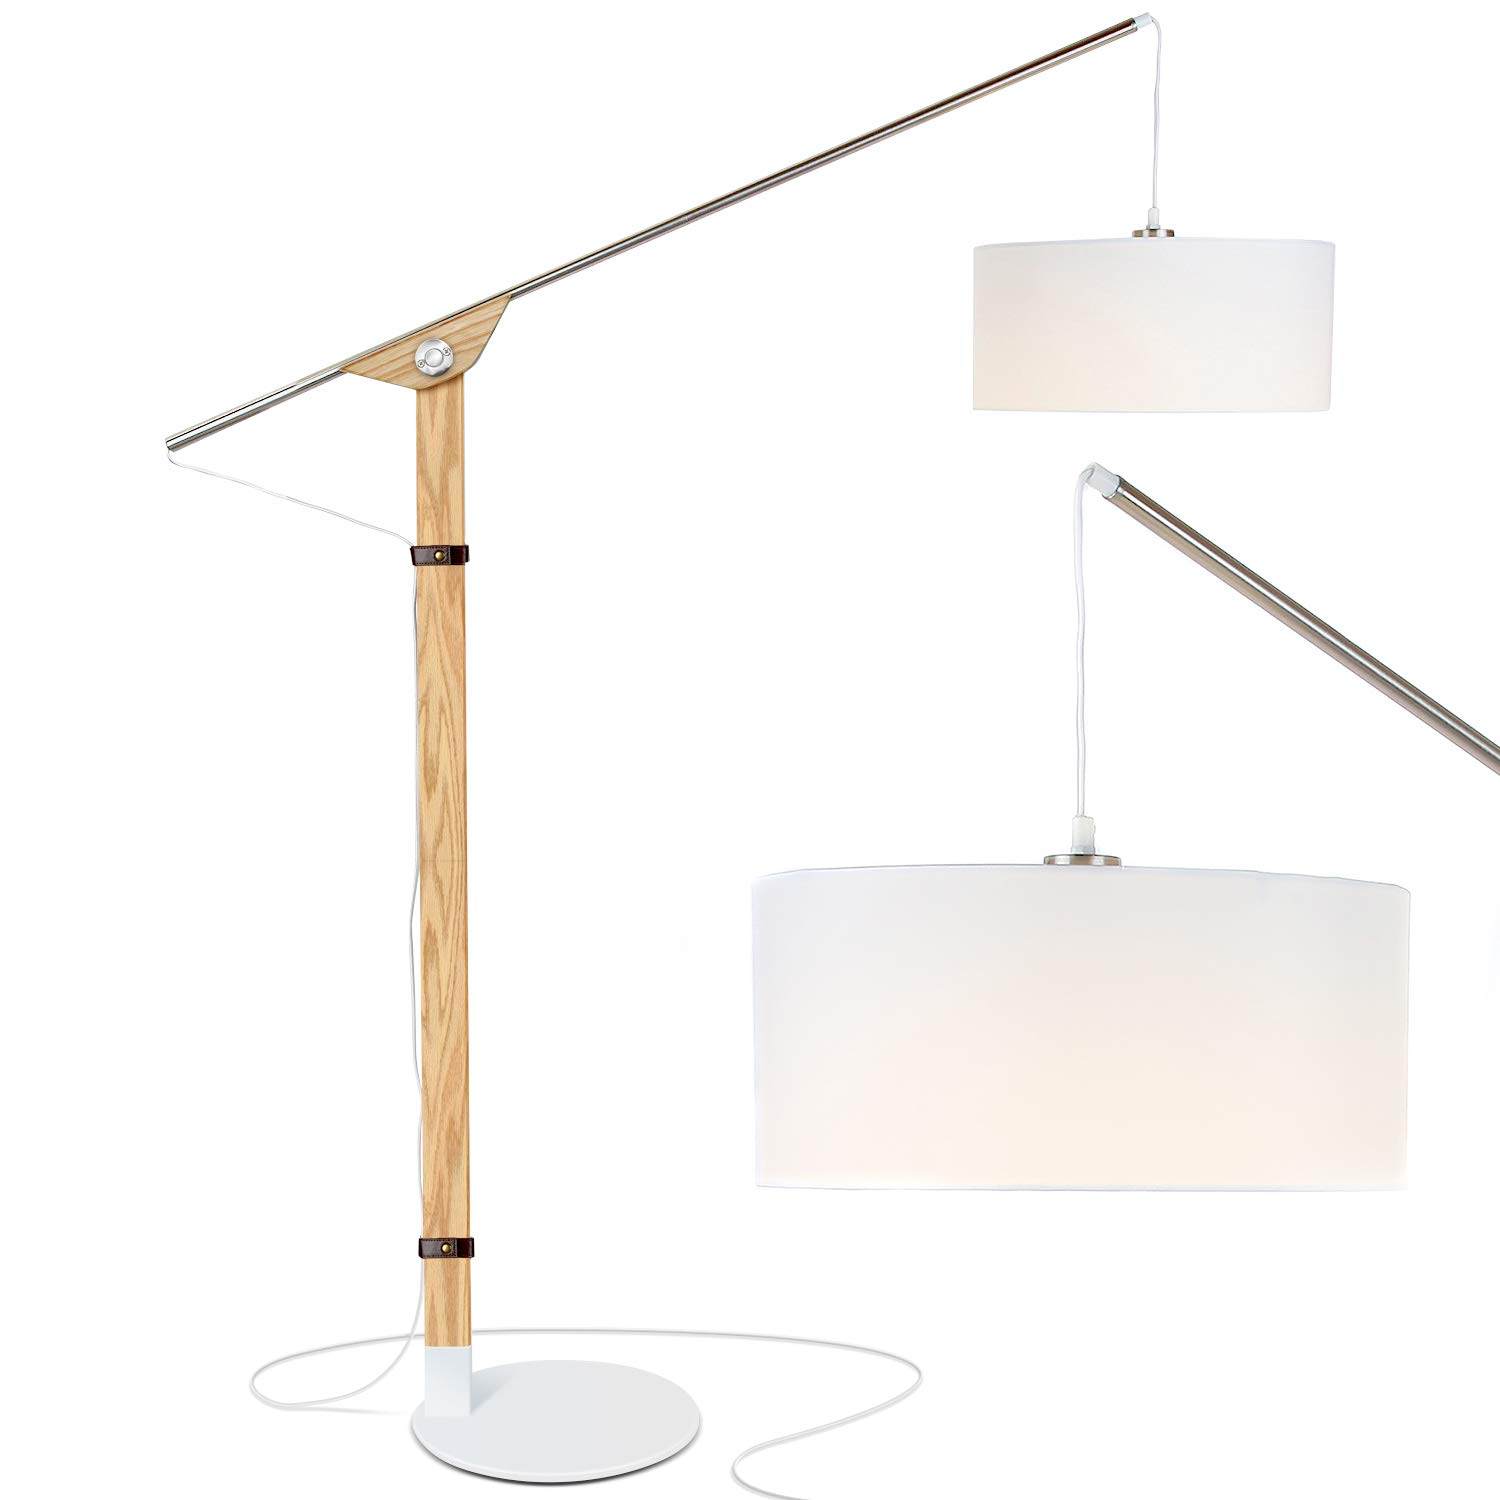 Brightech Eithan LED Floor Lamp Modern Contemporary Elevated Crane Arc Floor Lamp Linen Hanging Lamp Shade- Tall, Industrial – Uplight Lamp for Living Room Office or Bedroom Natural Wood